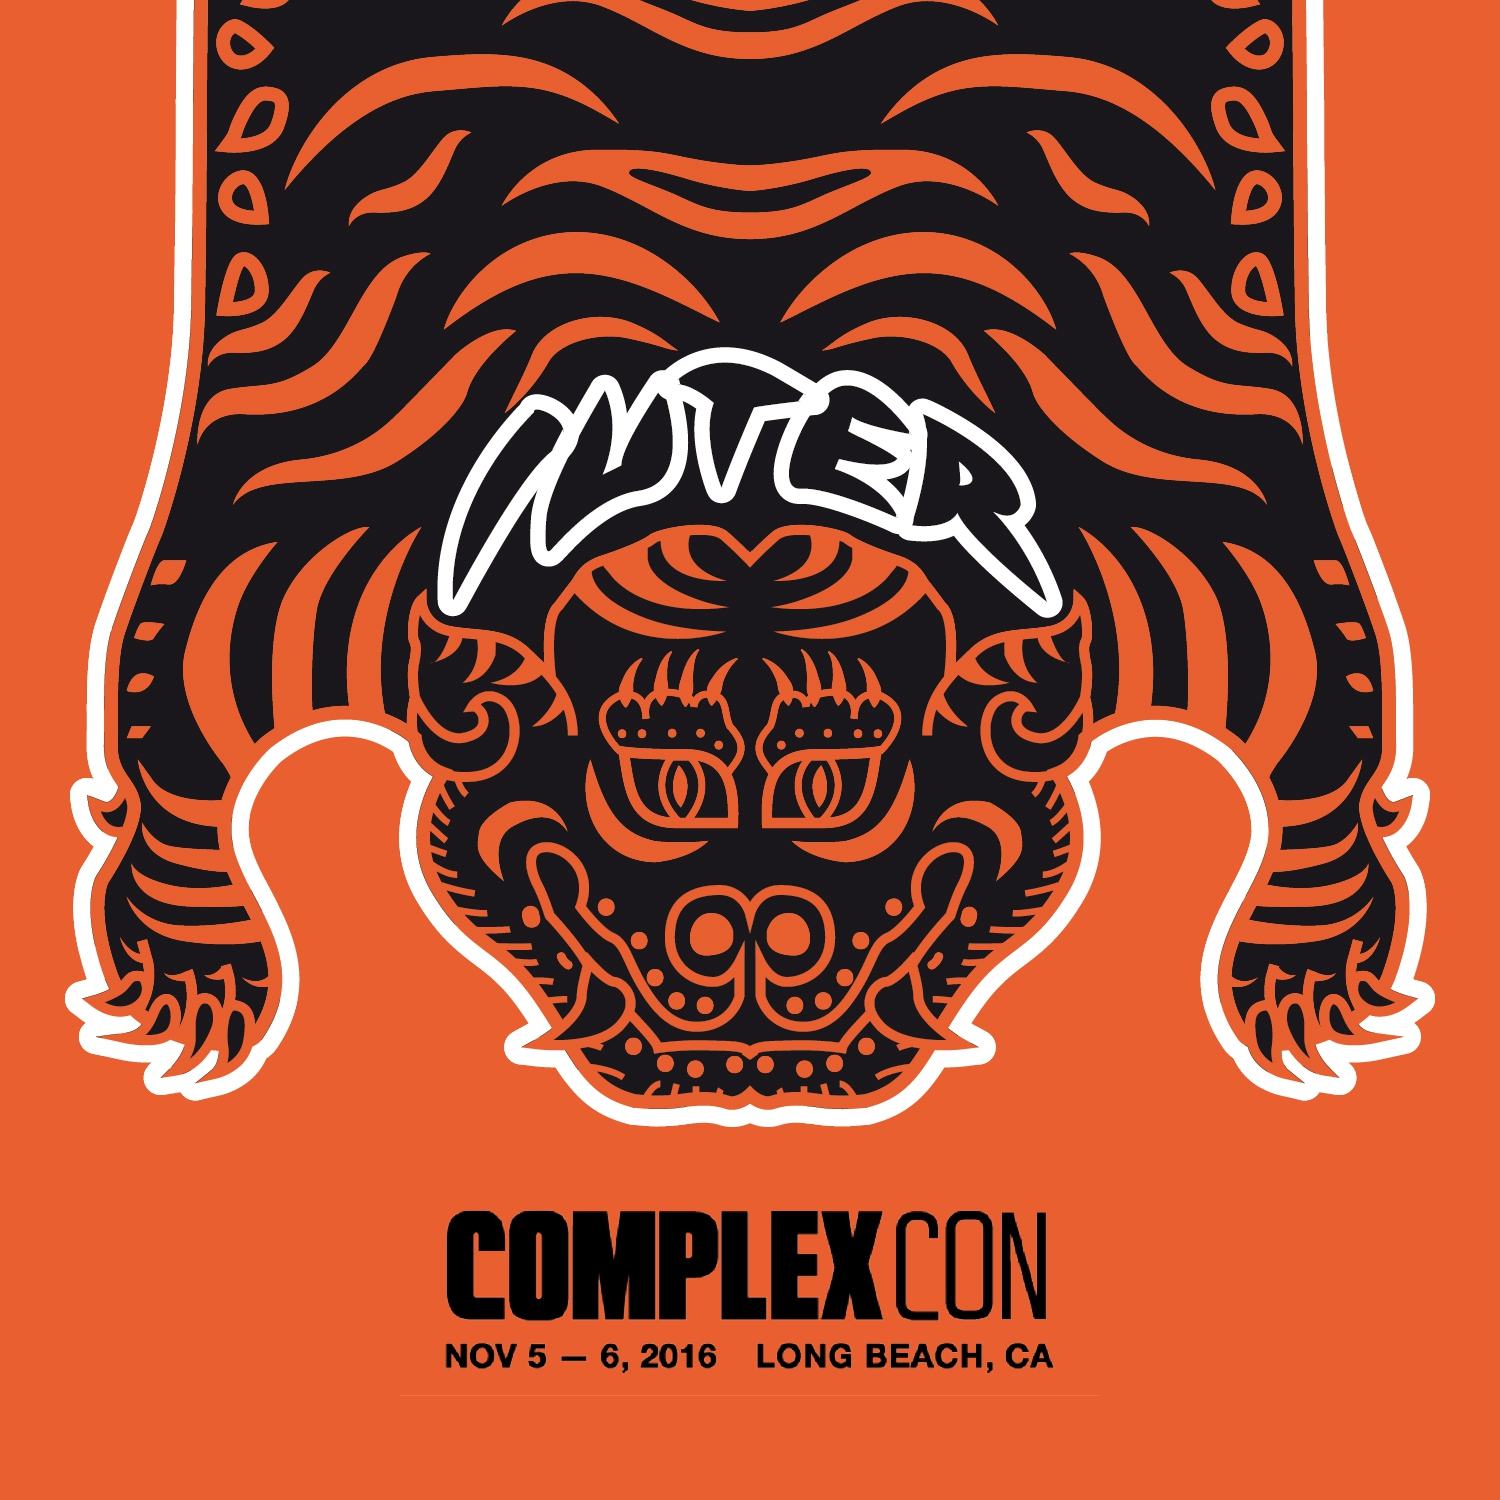 IUTER Tiger Rug Pack  Special Release for ComplexCon L.A.